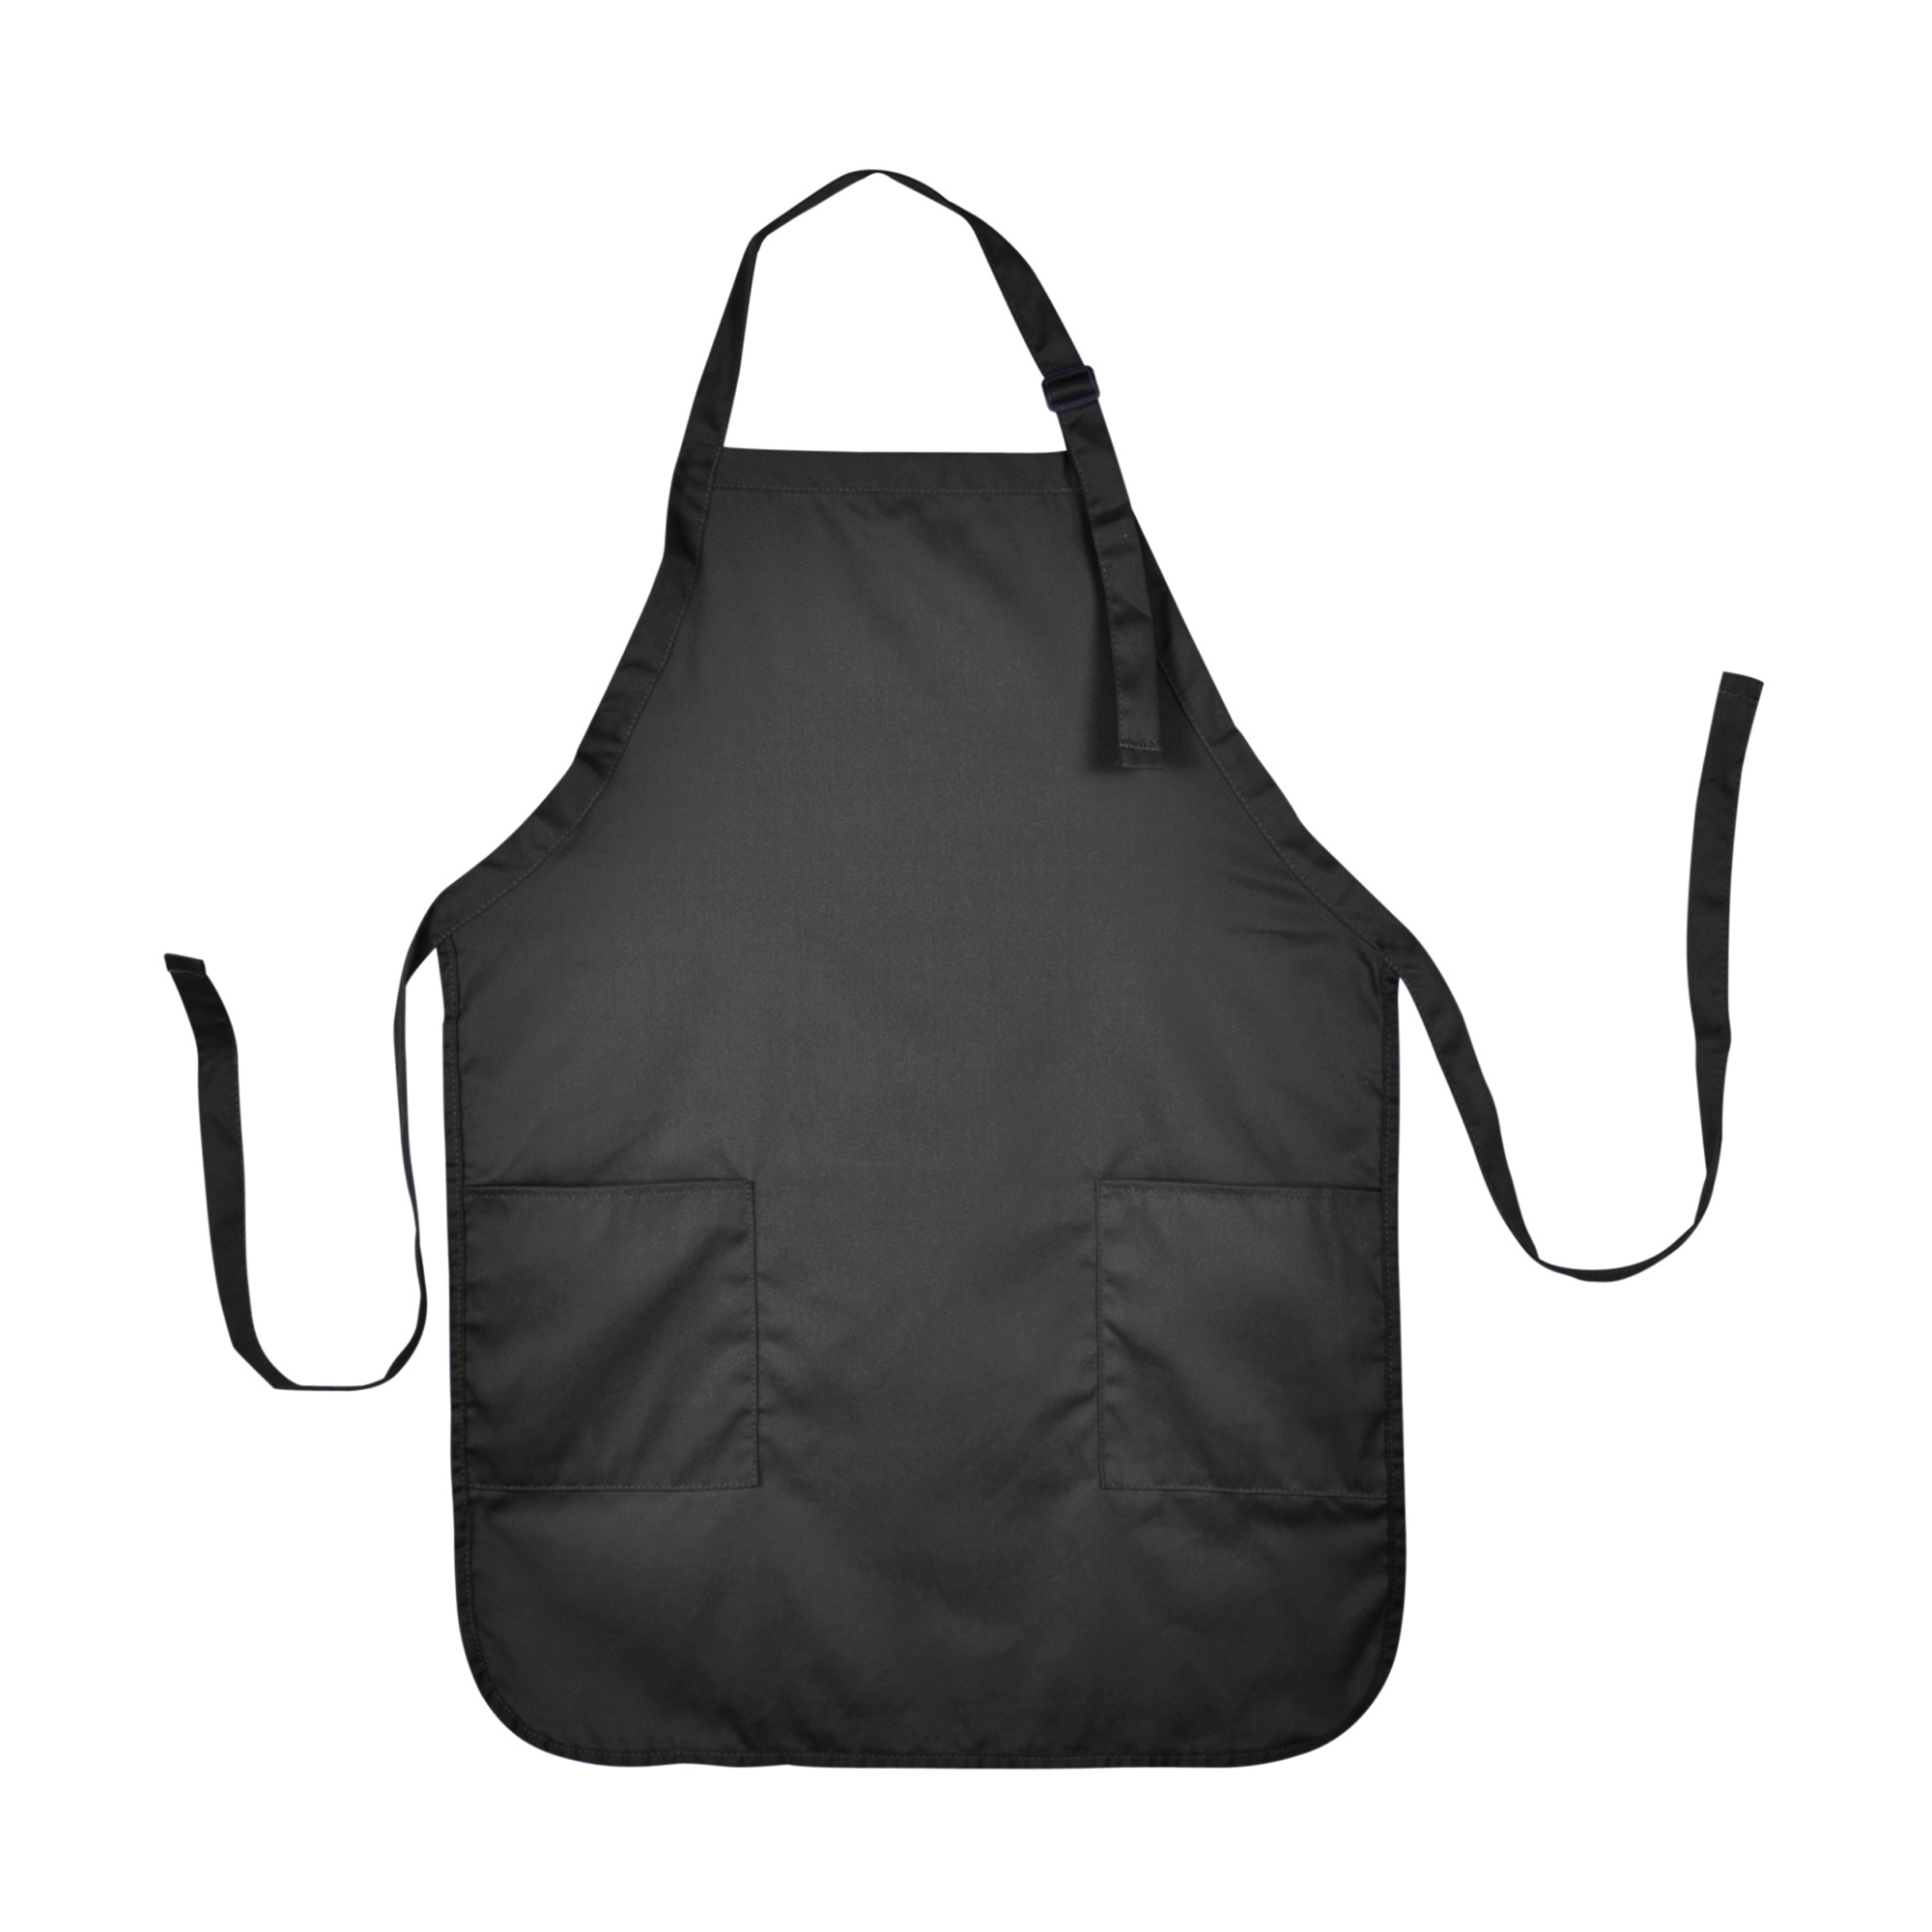 kitchen aprons chair dalix apron commercial restaurant home bib spun poly cotton 2 pockets in black walmart com